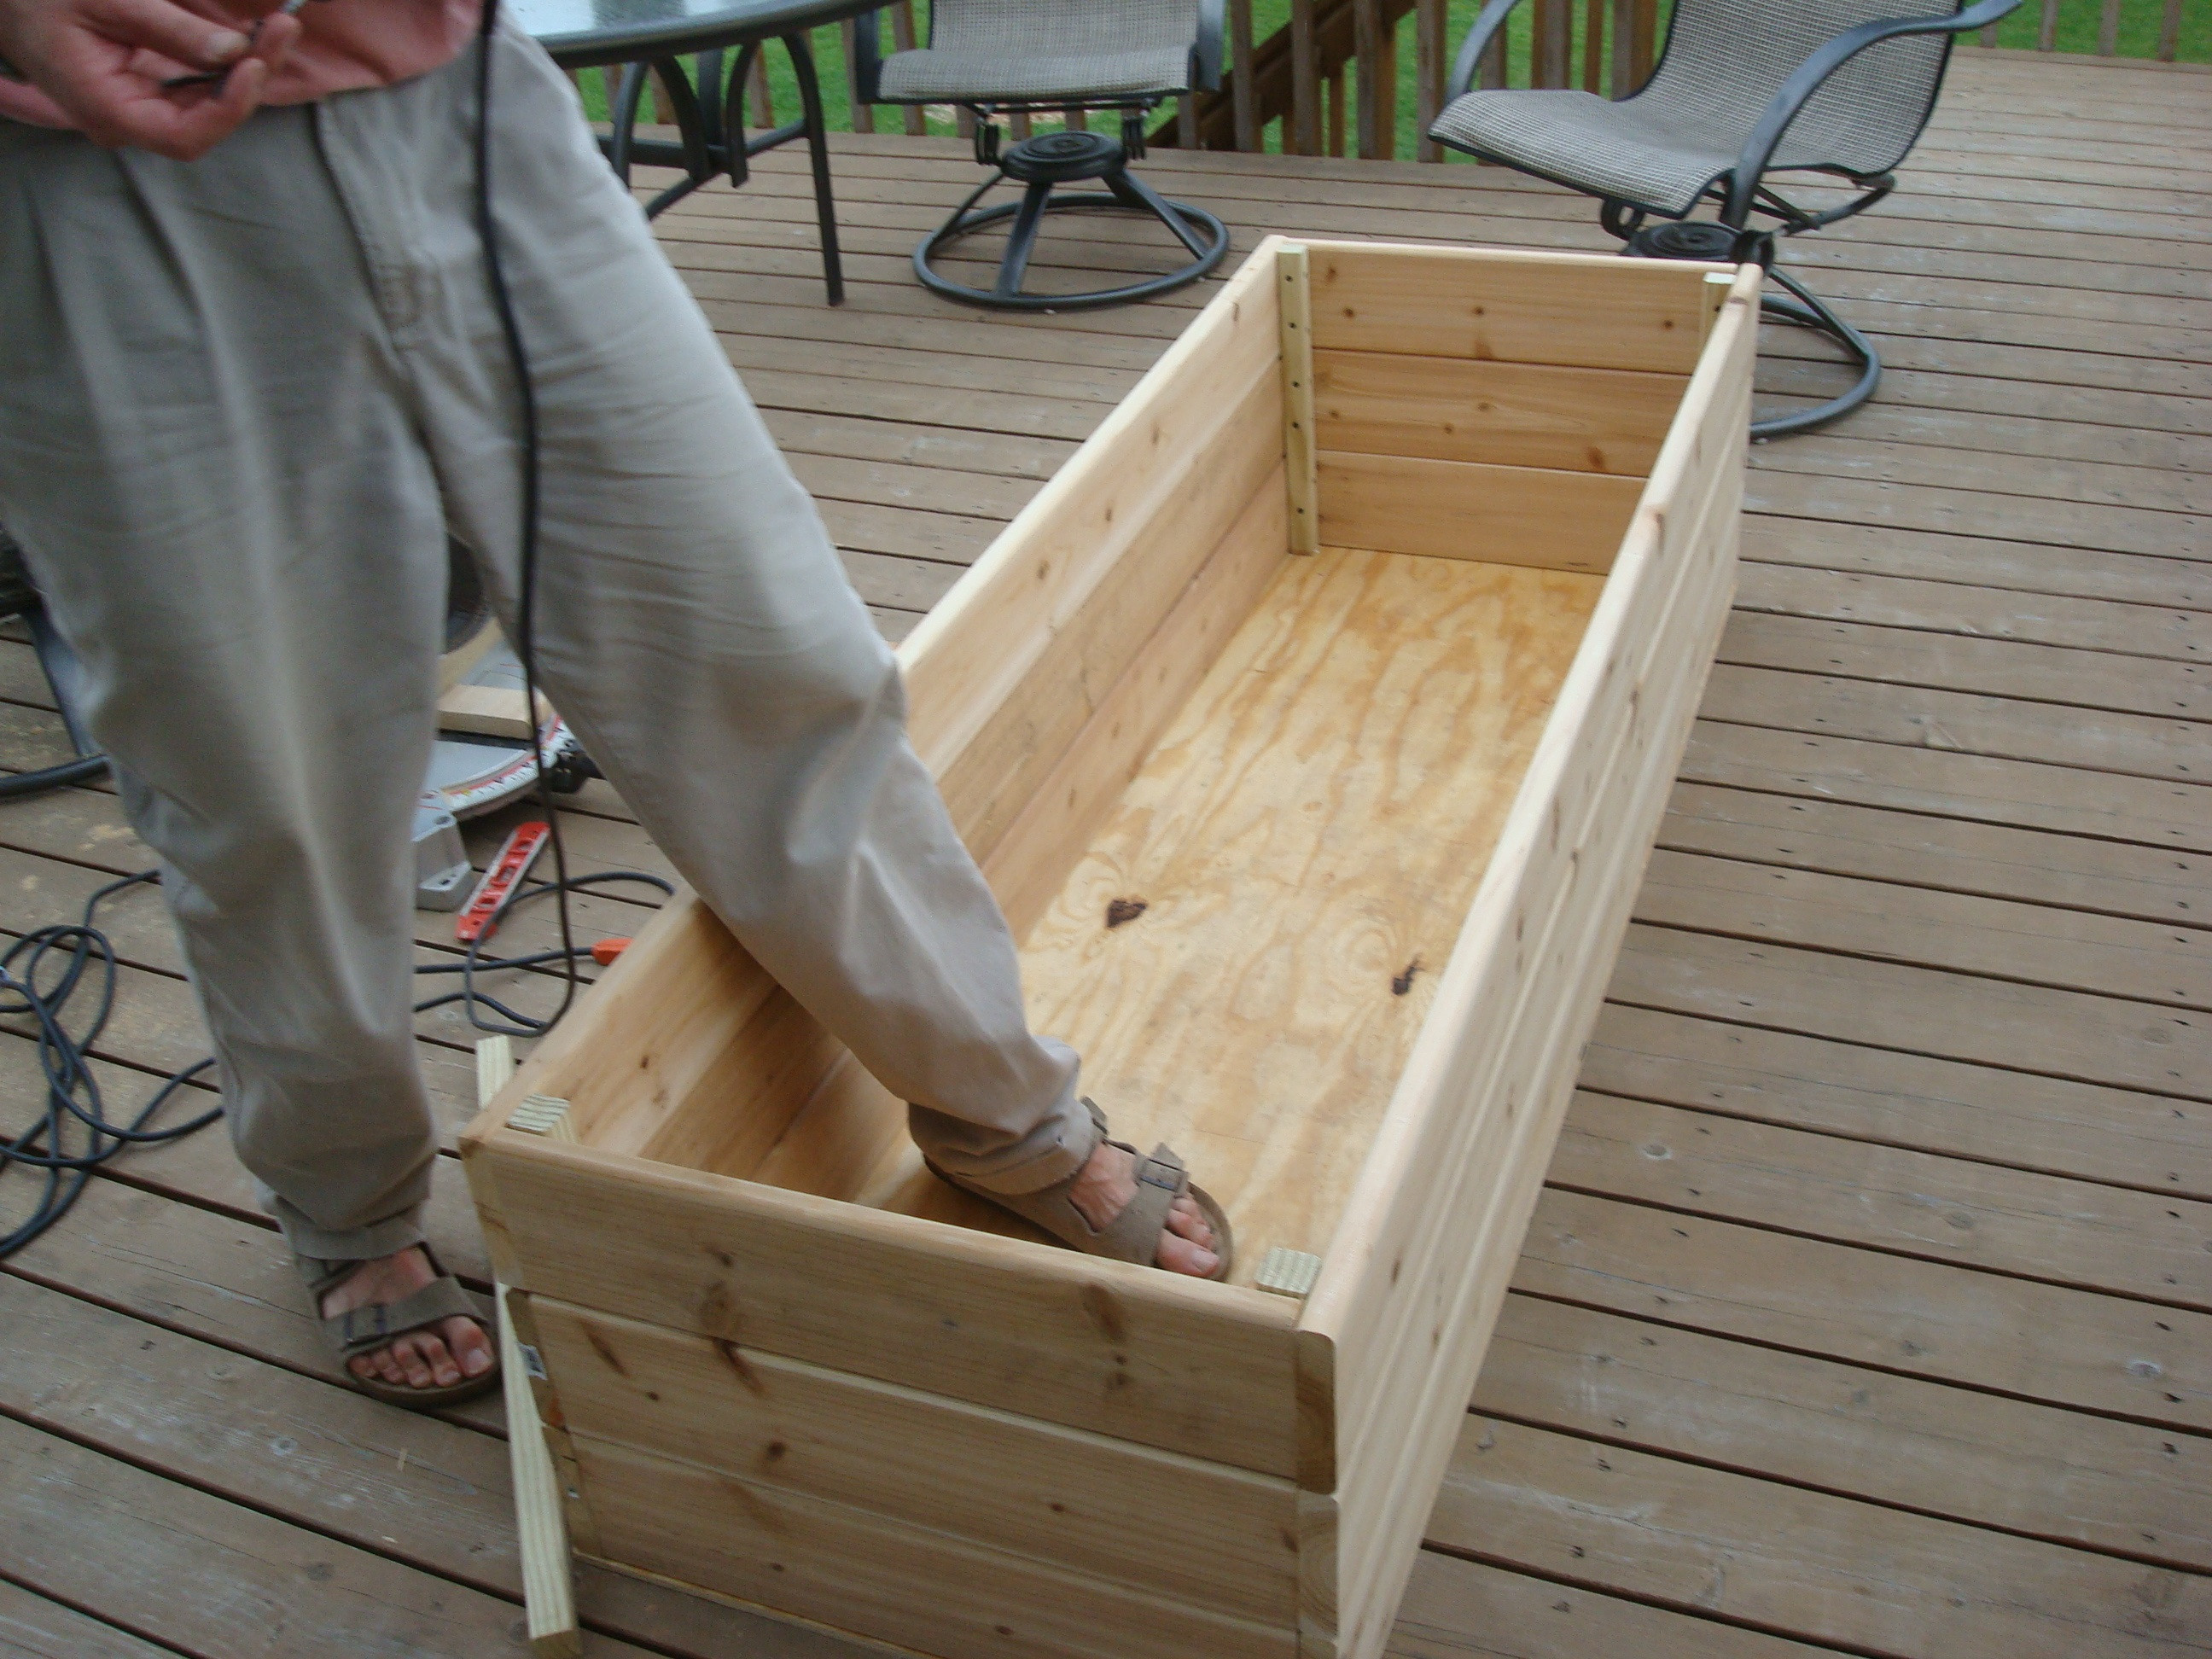 Best ideas about DIY Deck Boxes . Save or Pin Ve able Garden on the Deck You Bet Now.